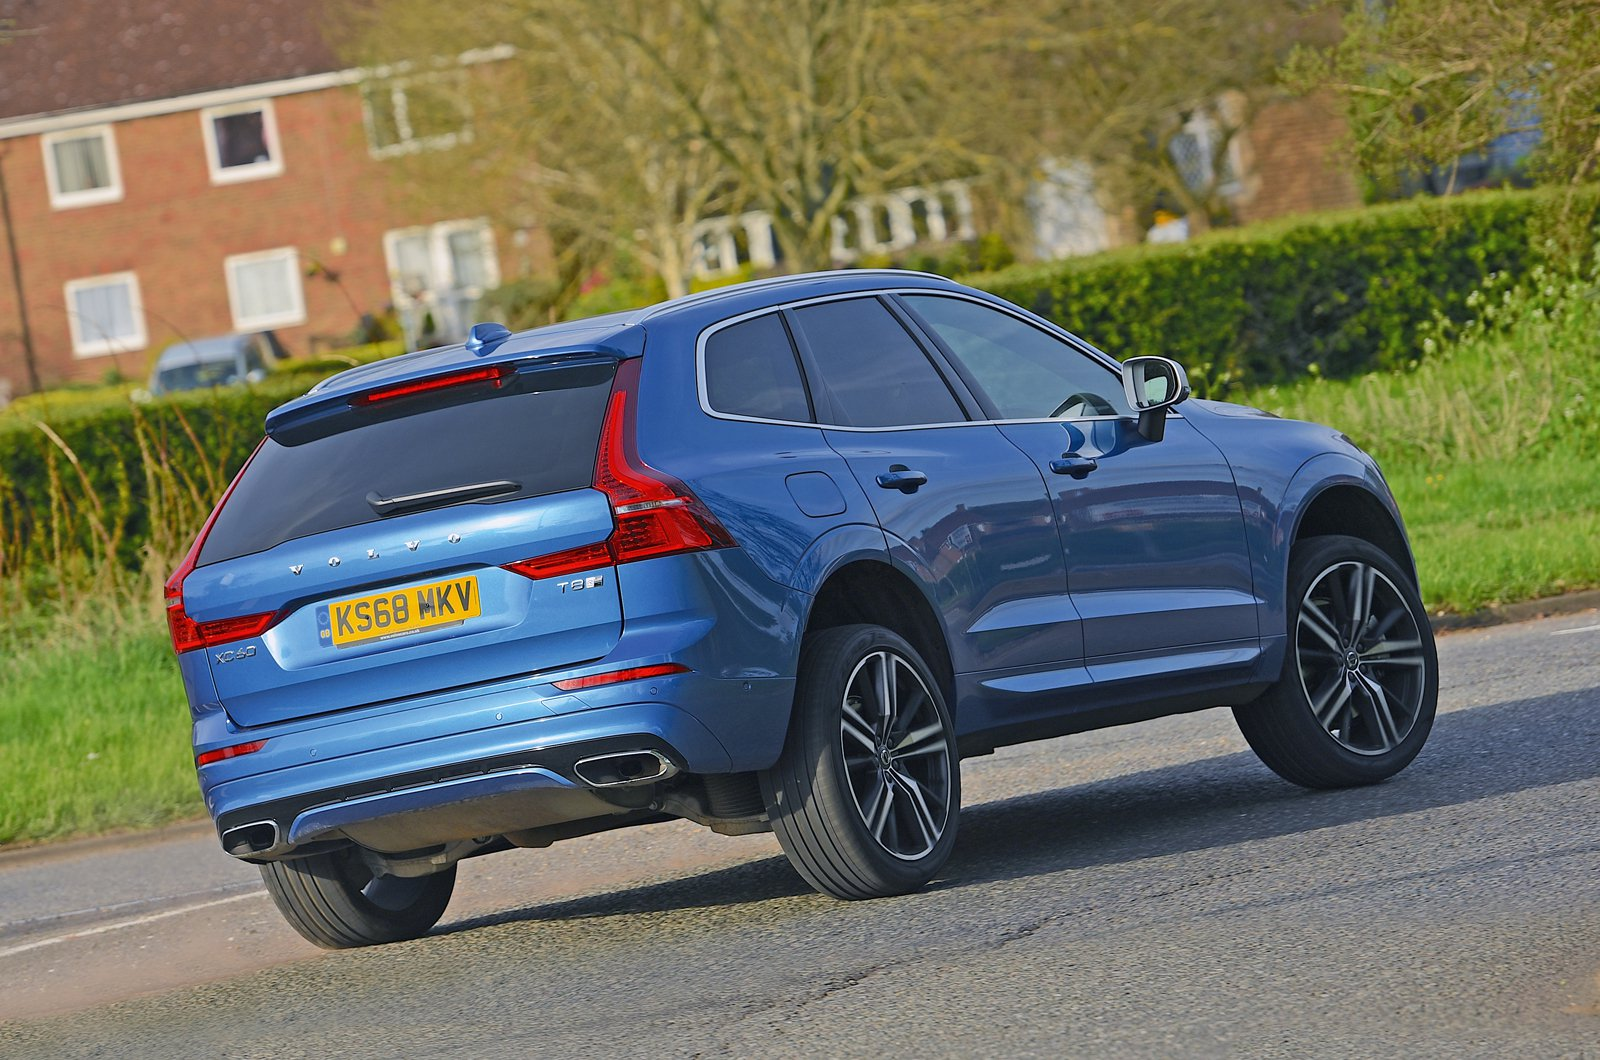 Volvo XC60 T8 rear - 68 plate